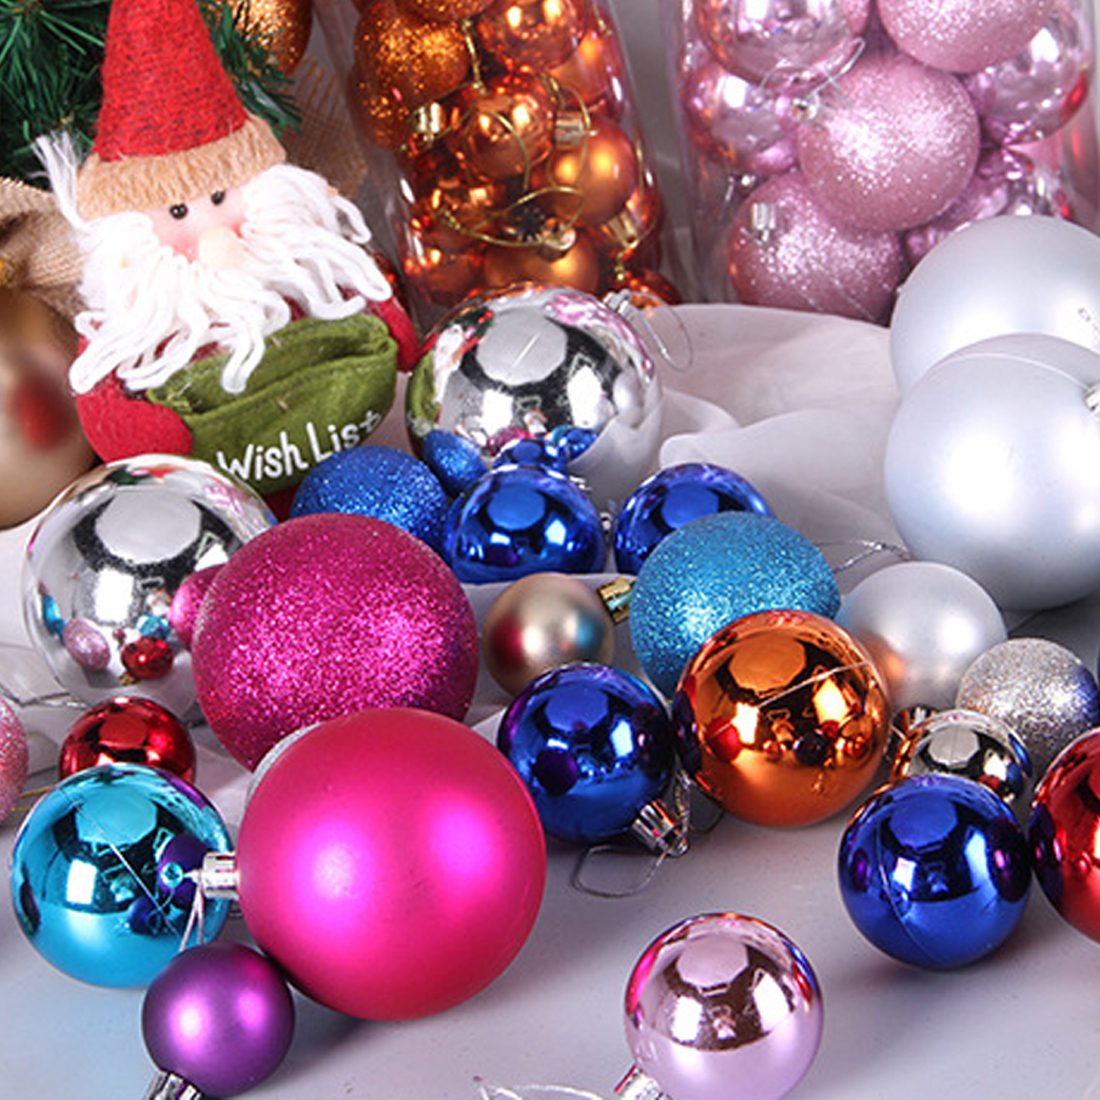 Pop Christmas Tree Decor Ball Bauble Hanging Xmas Party Ornament decorations for Home Christmas decorations Y18102609